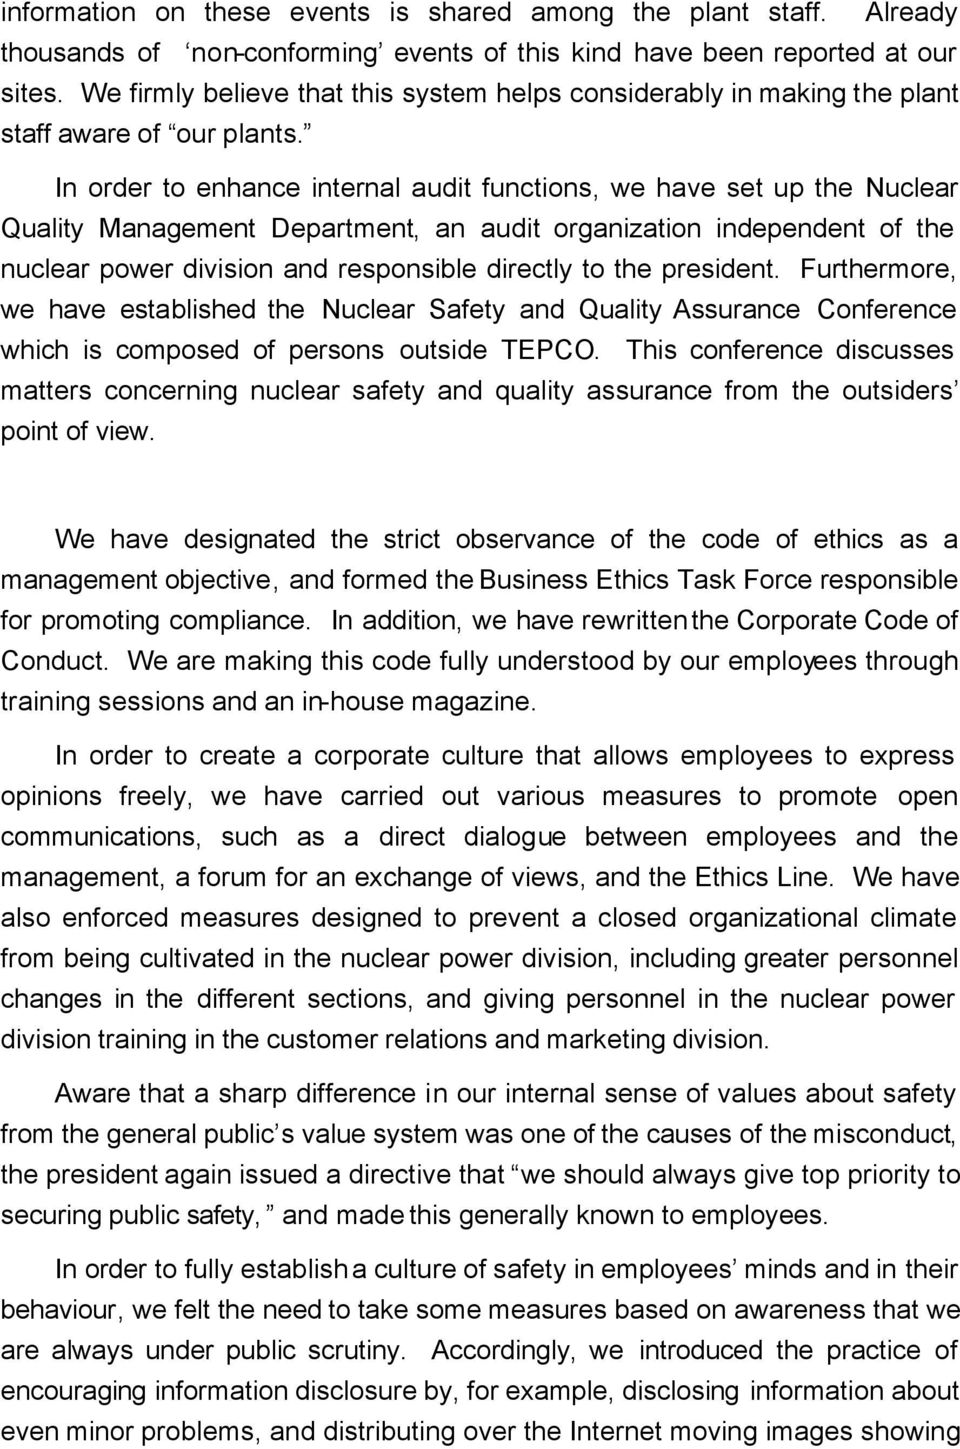 In order to enhance internal audit functions, we have set up the Nuclear Quality Management Department, an audit organization independent of the nuclear power division and responsible directly to the